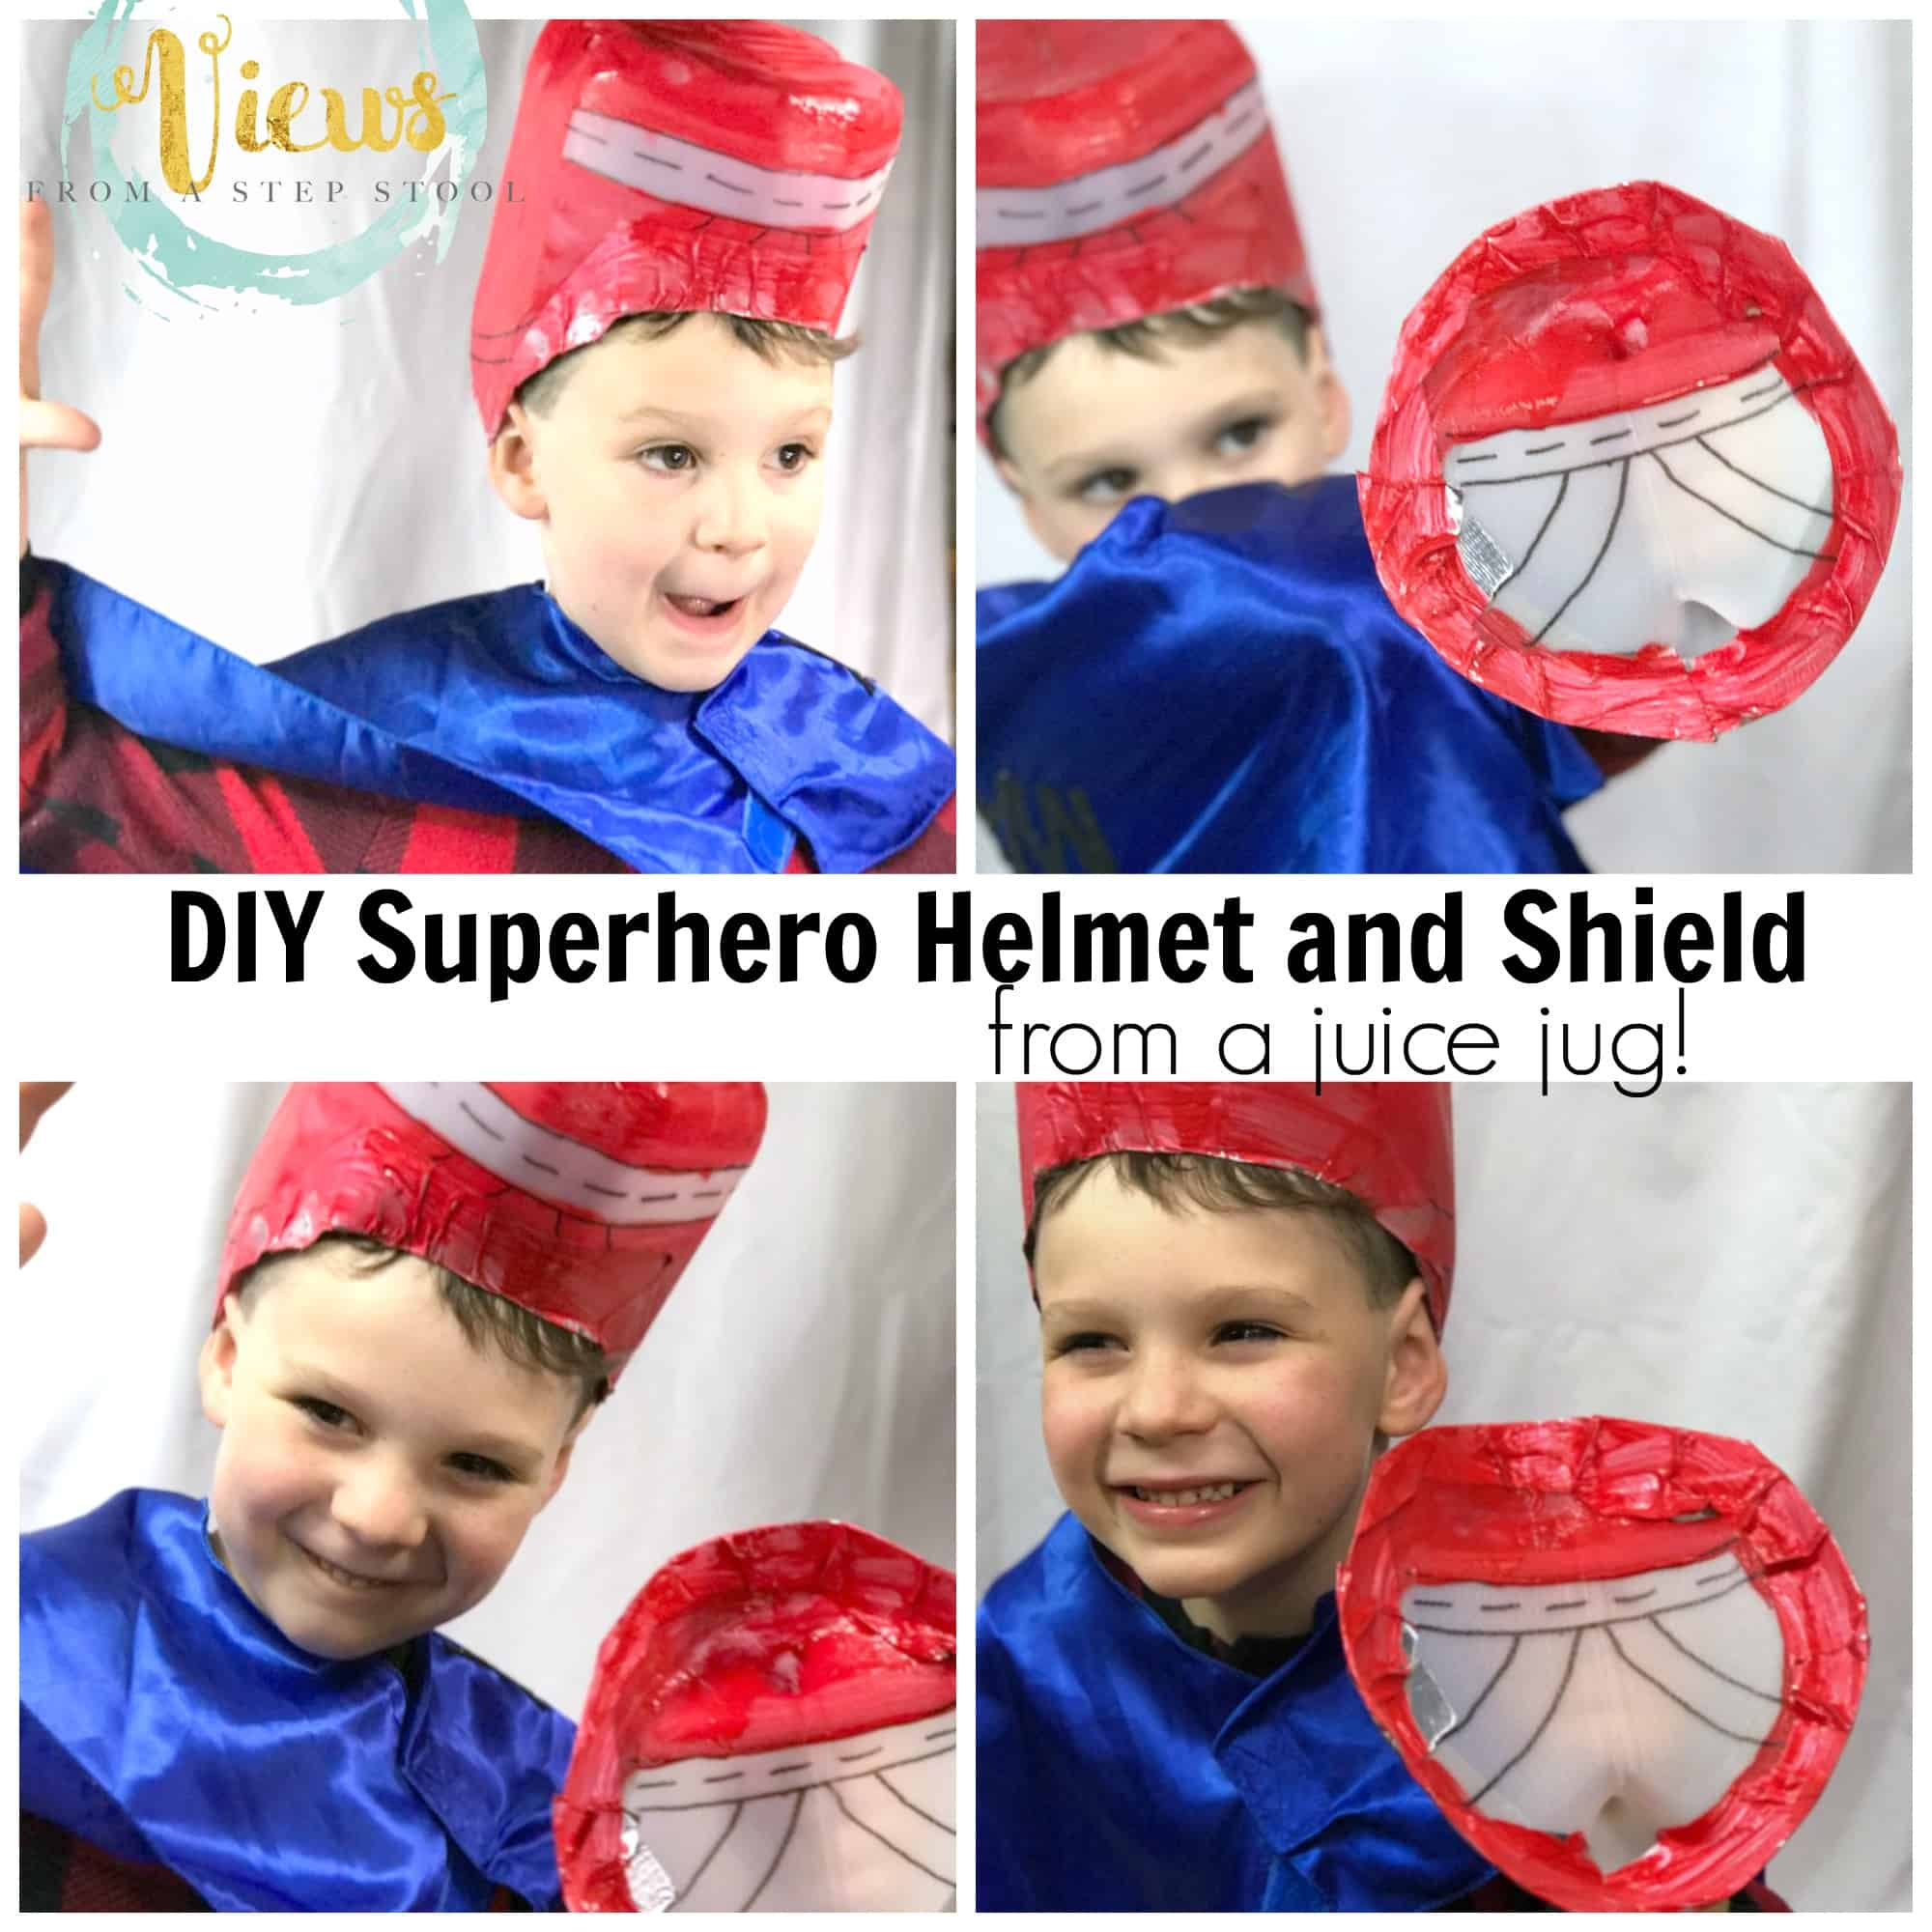 Turn an ordinary plastic jug into DIY superhero costume accessories! Make a superhero helmet and a shield!